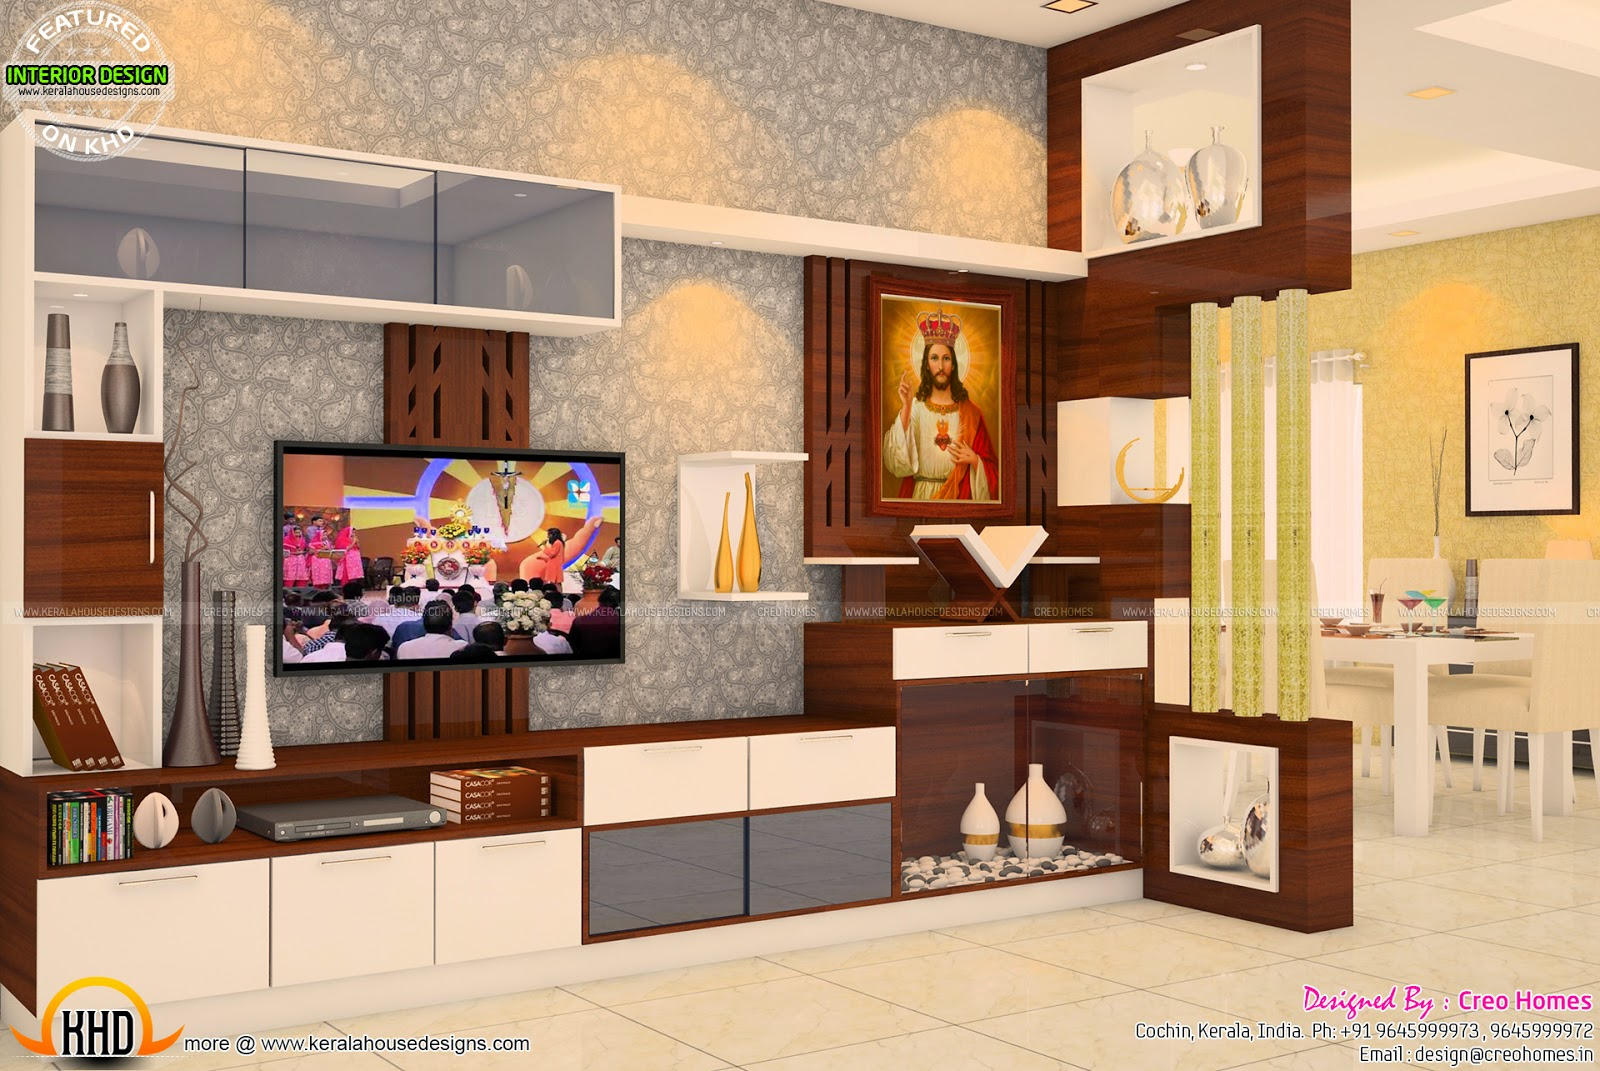 Living prayer kitchen interiors kerala home design and floor plans - Room house design ...